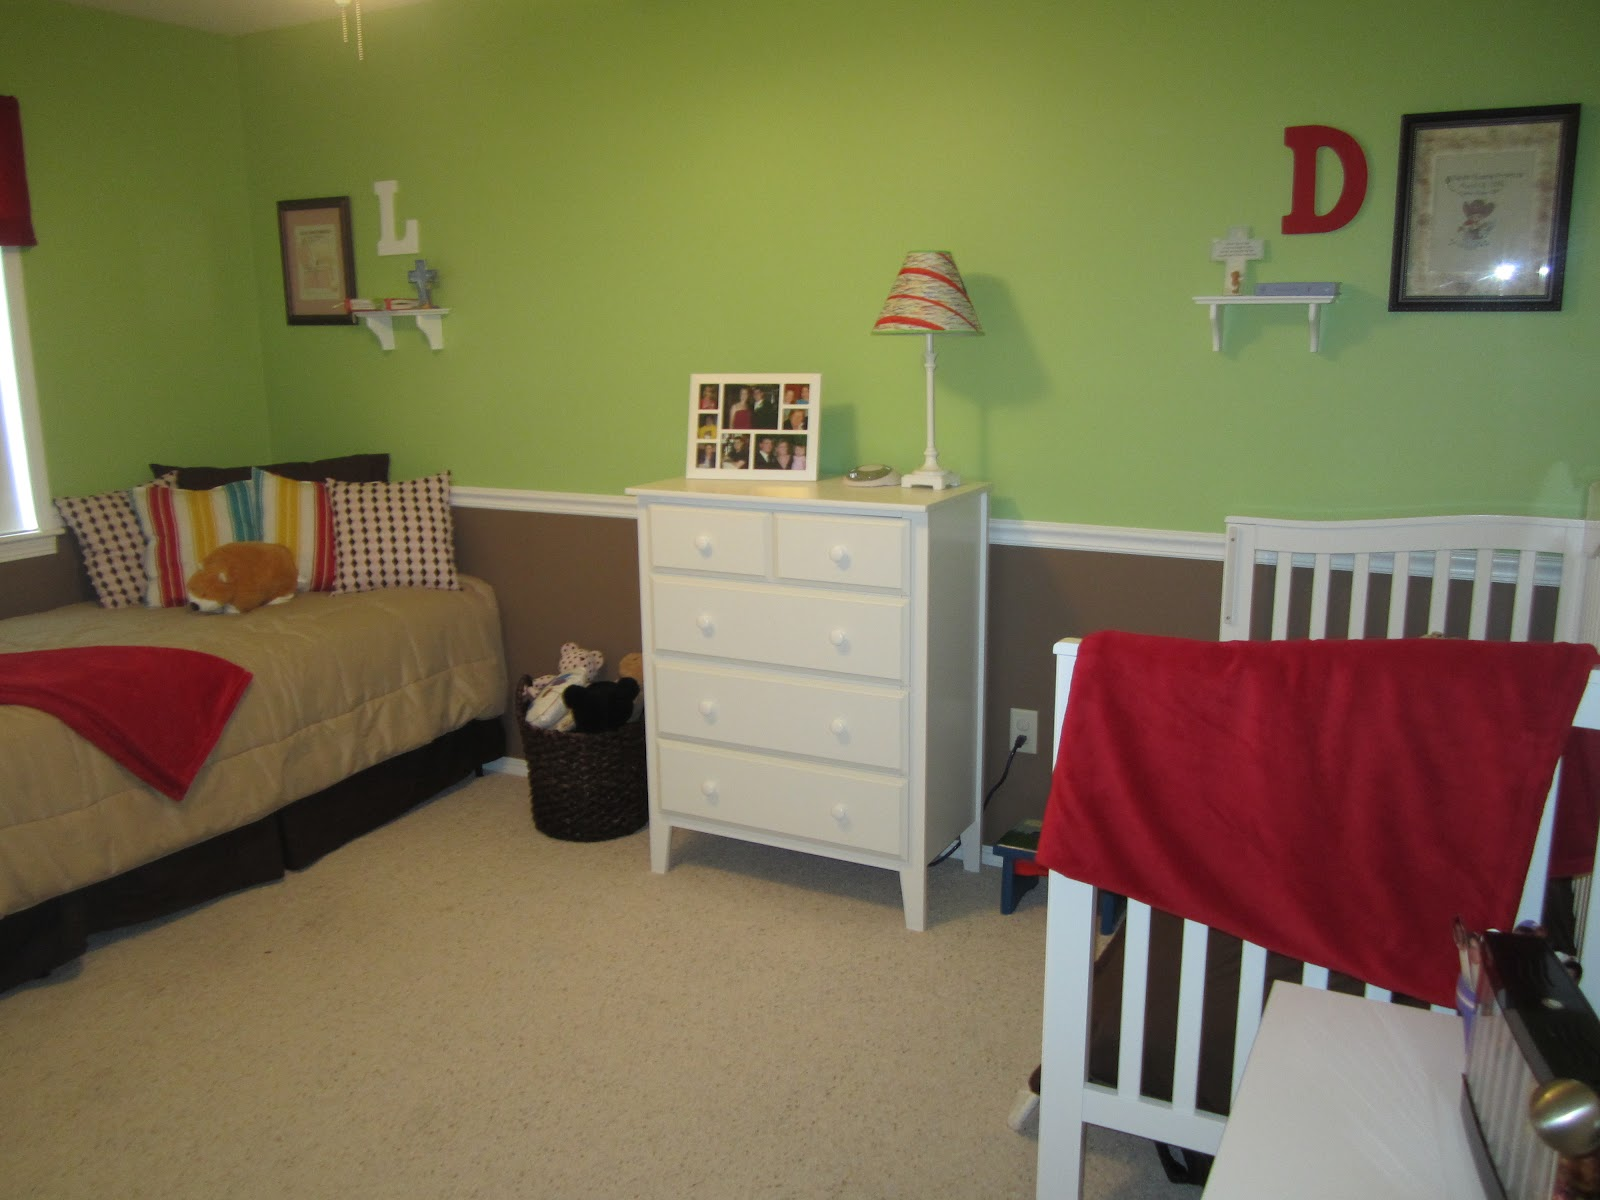 Raising little disciples boy and girl bedroom - Bedroom ideas for 3 year old boy ...